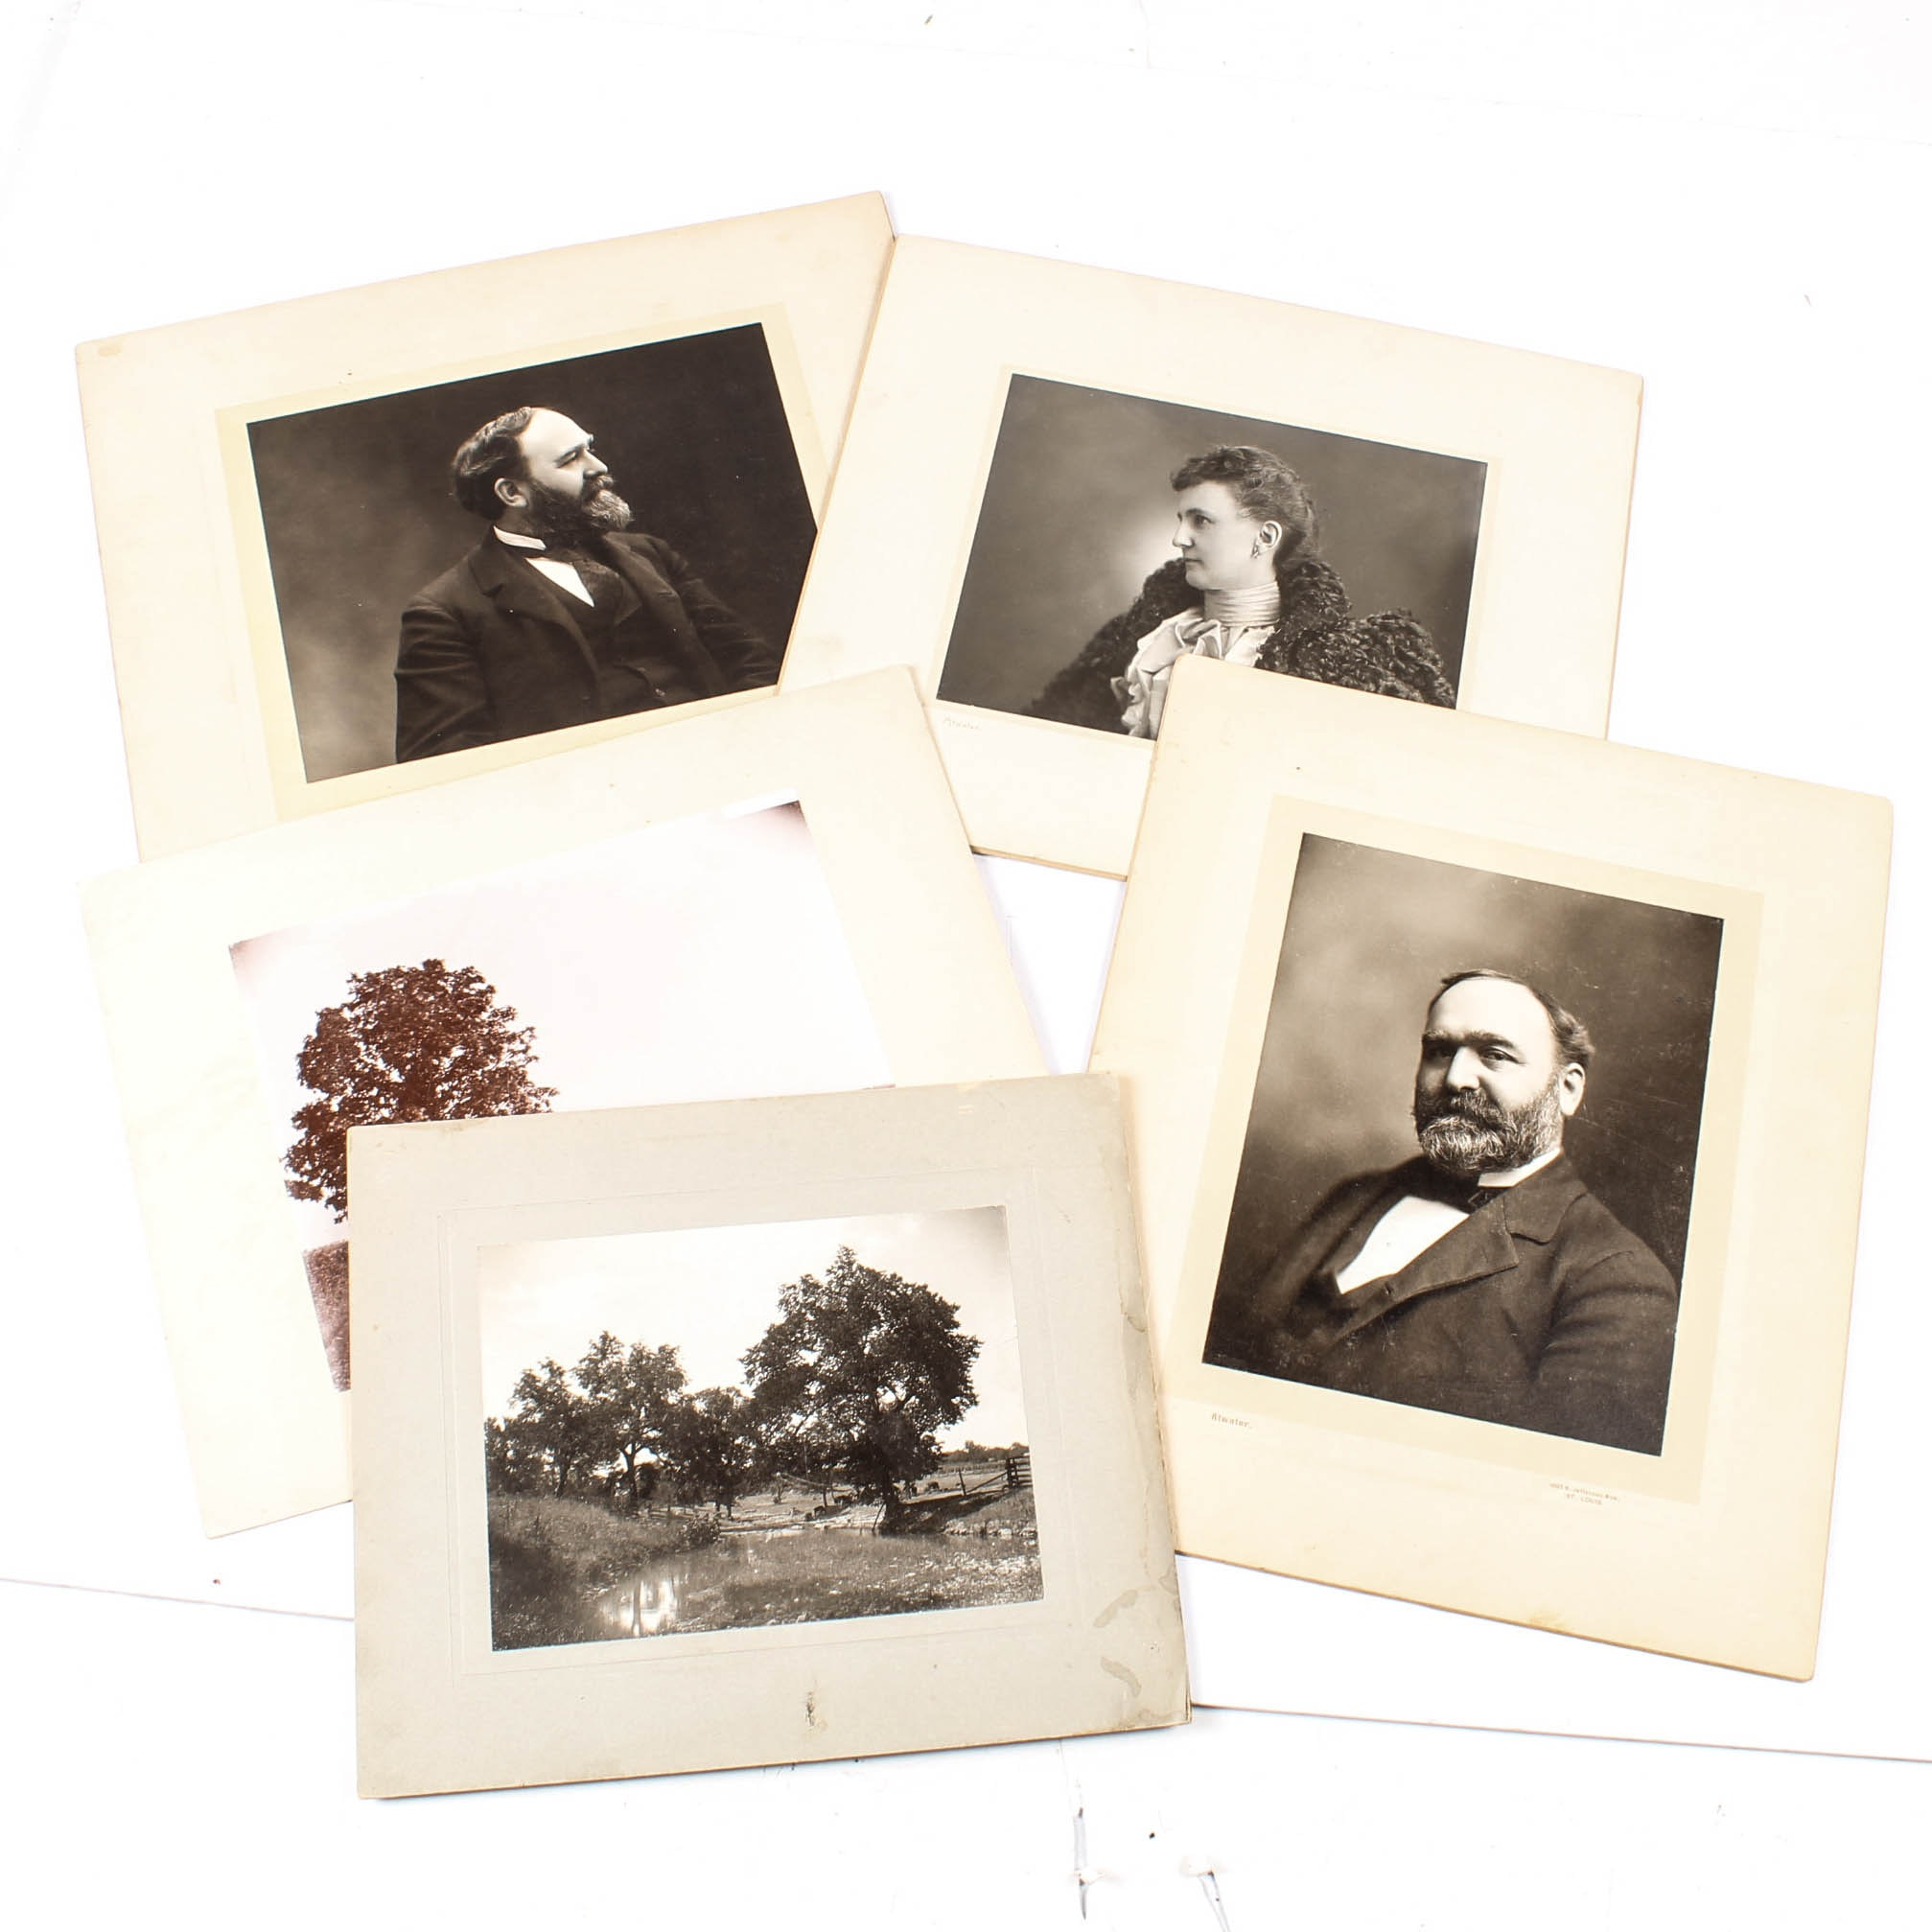 Antique Landscape & Portrait Photographs From the Atwater Studio, St. Louis